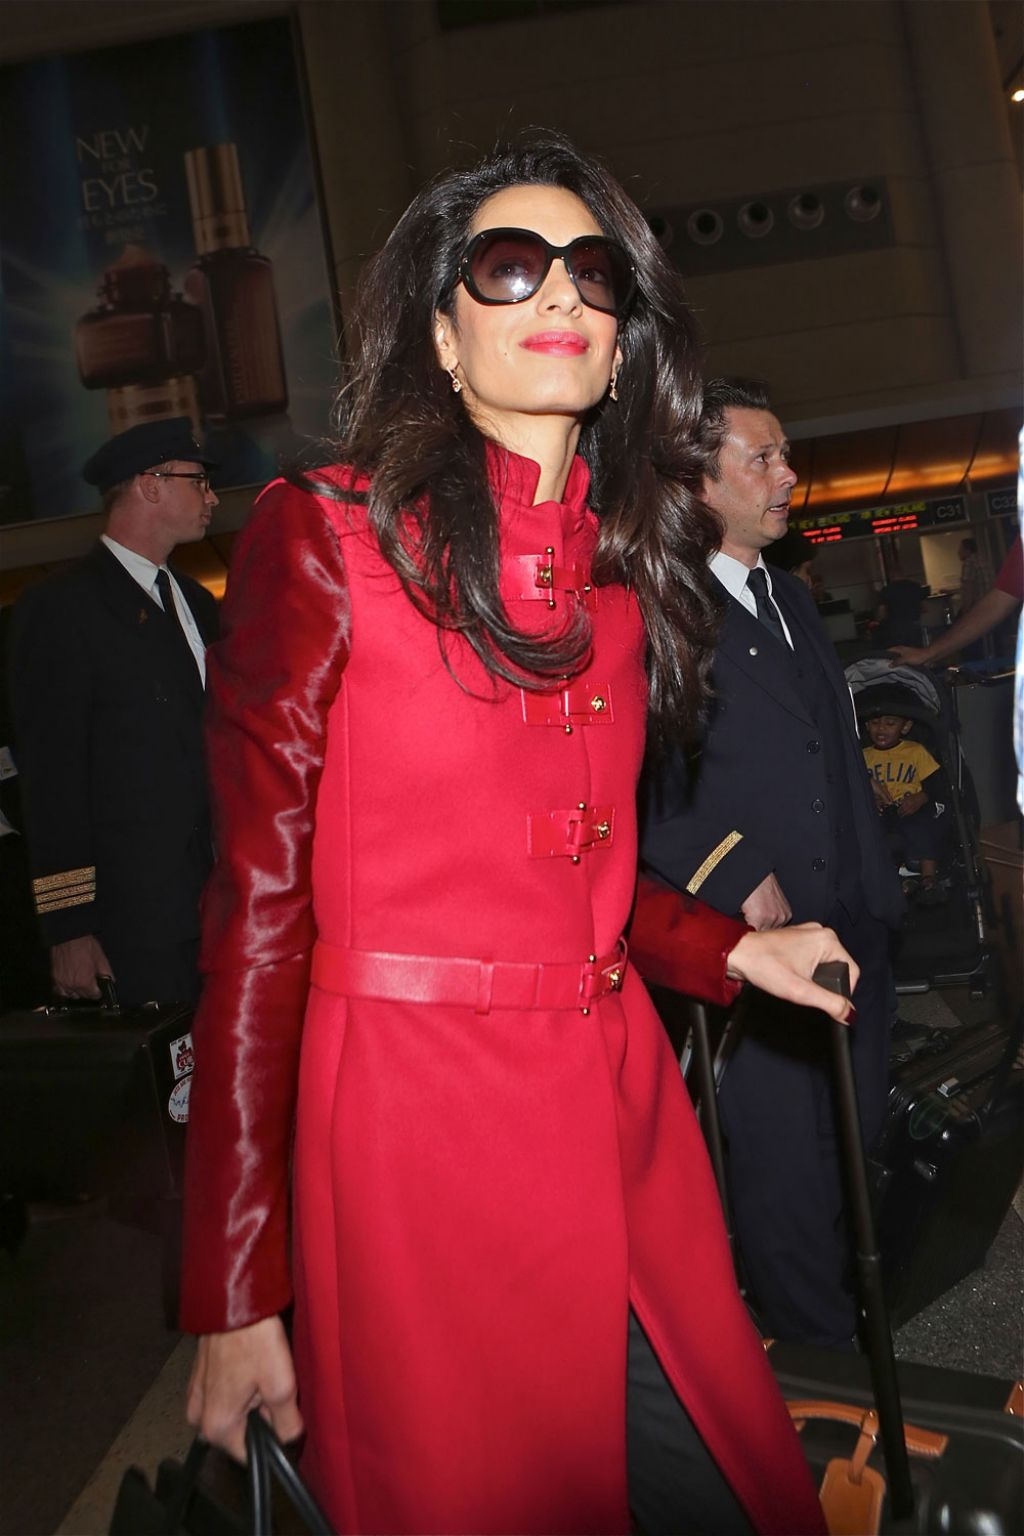 Amal Alamuddin (Clooney) Style - at Los Angeles International Airport, January 2015